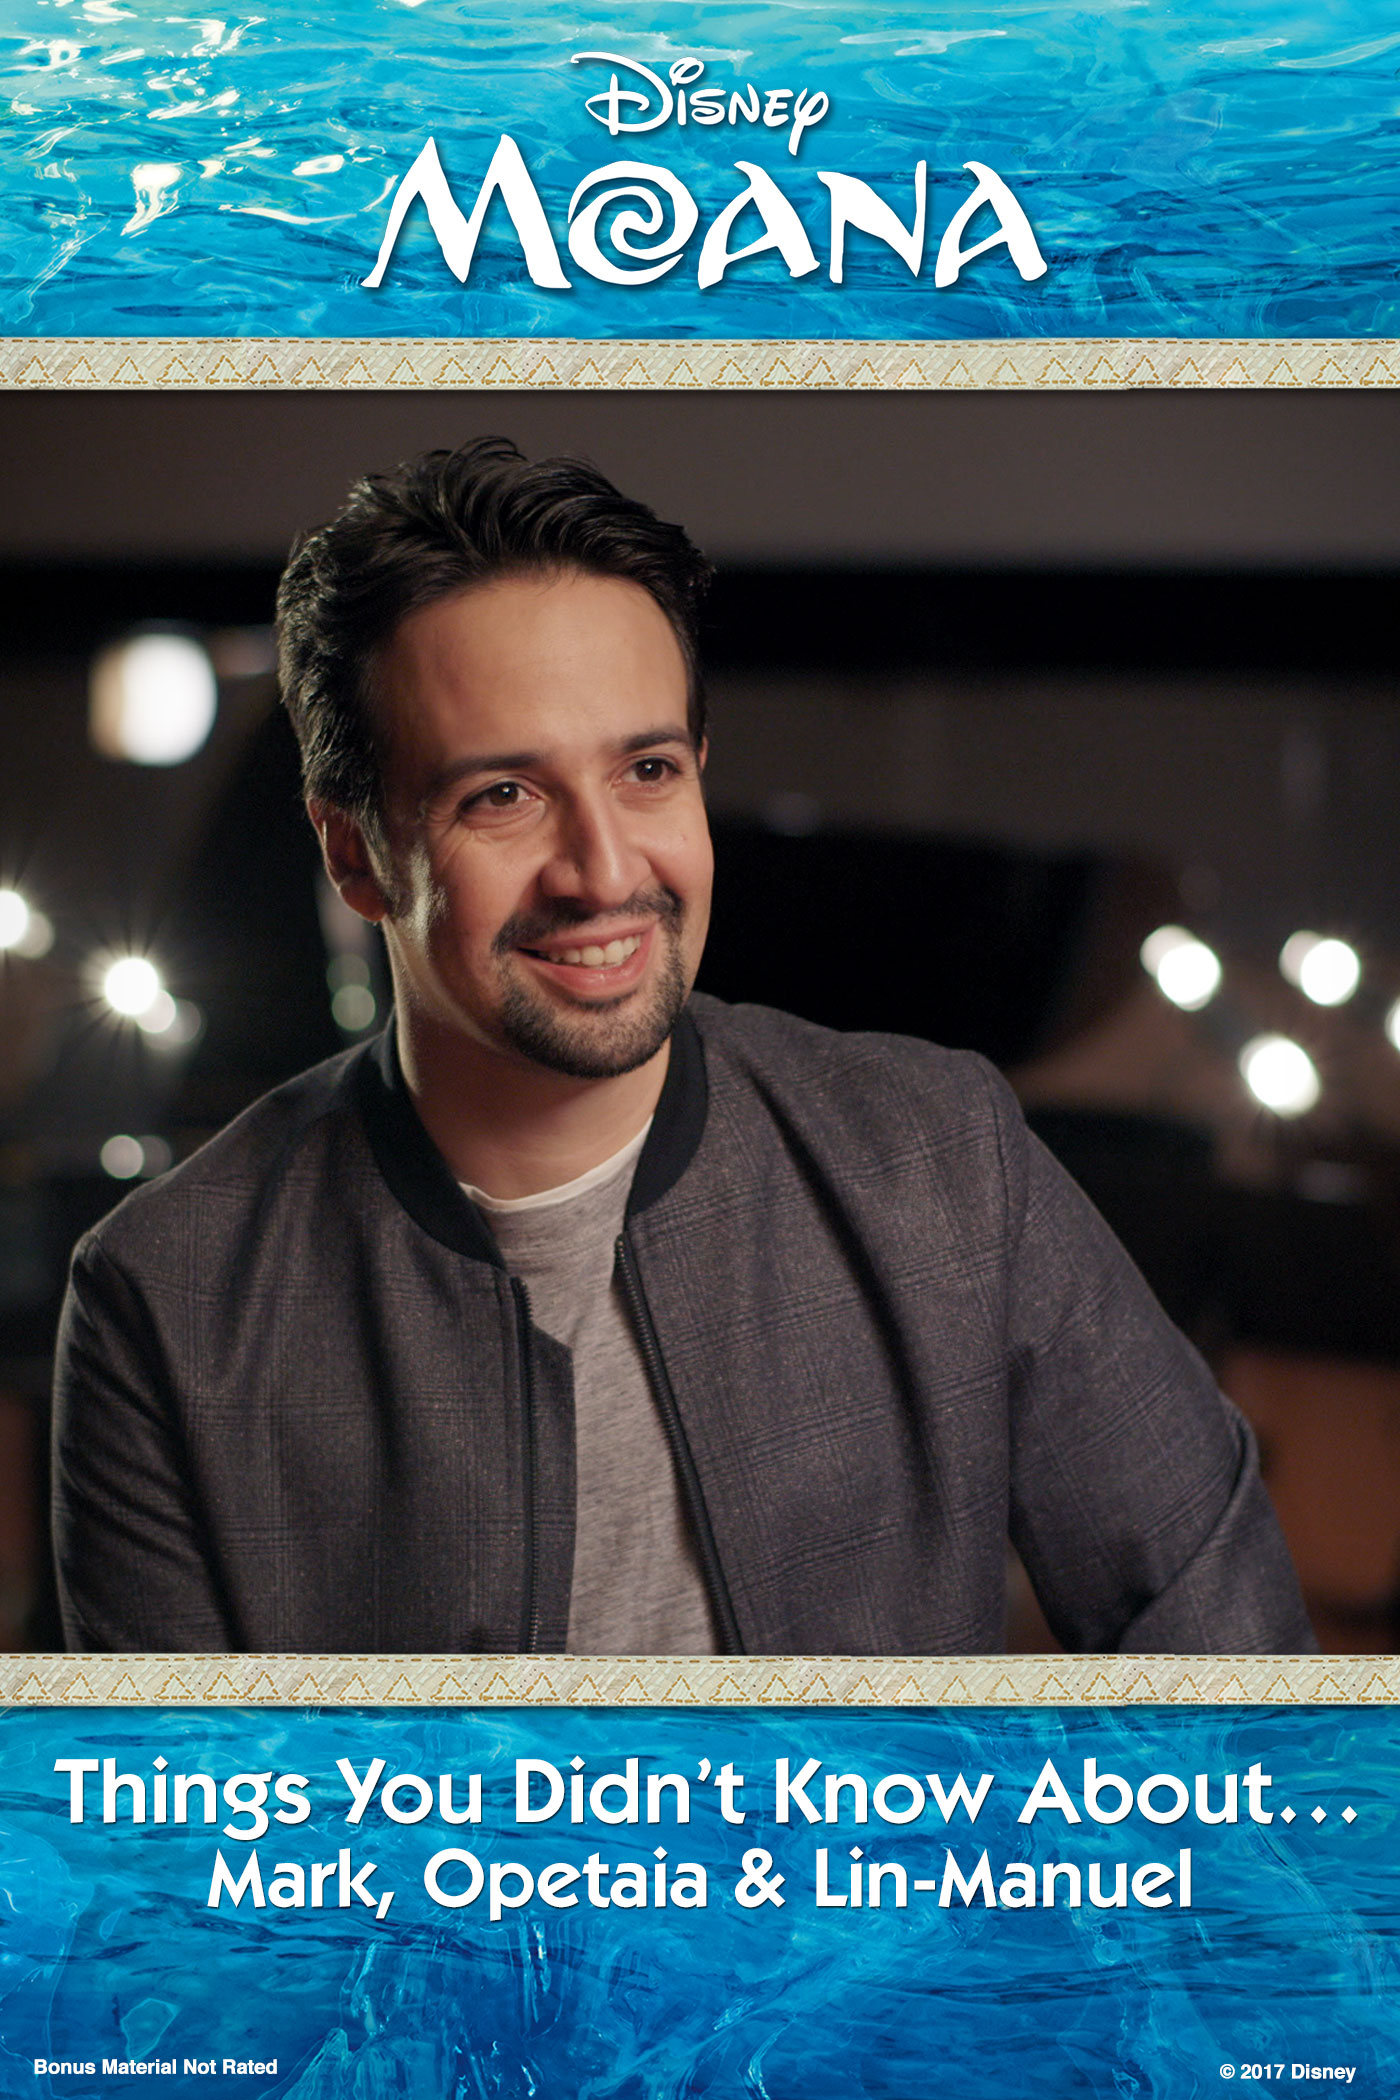 Things You Didn't Know About...Mark, Opetaia & Lin-Manuel